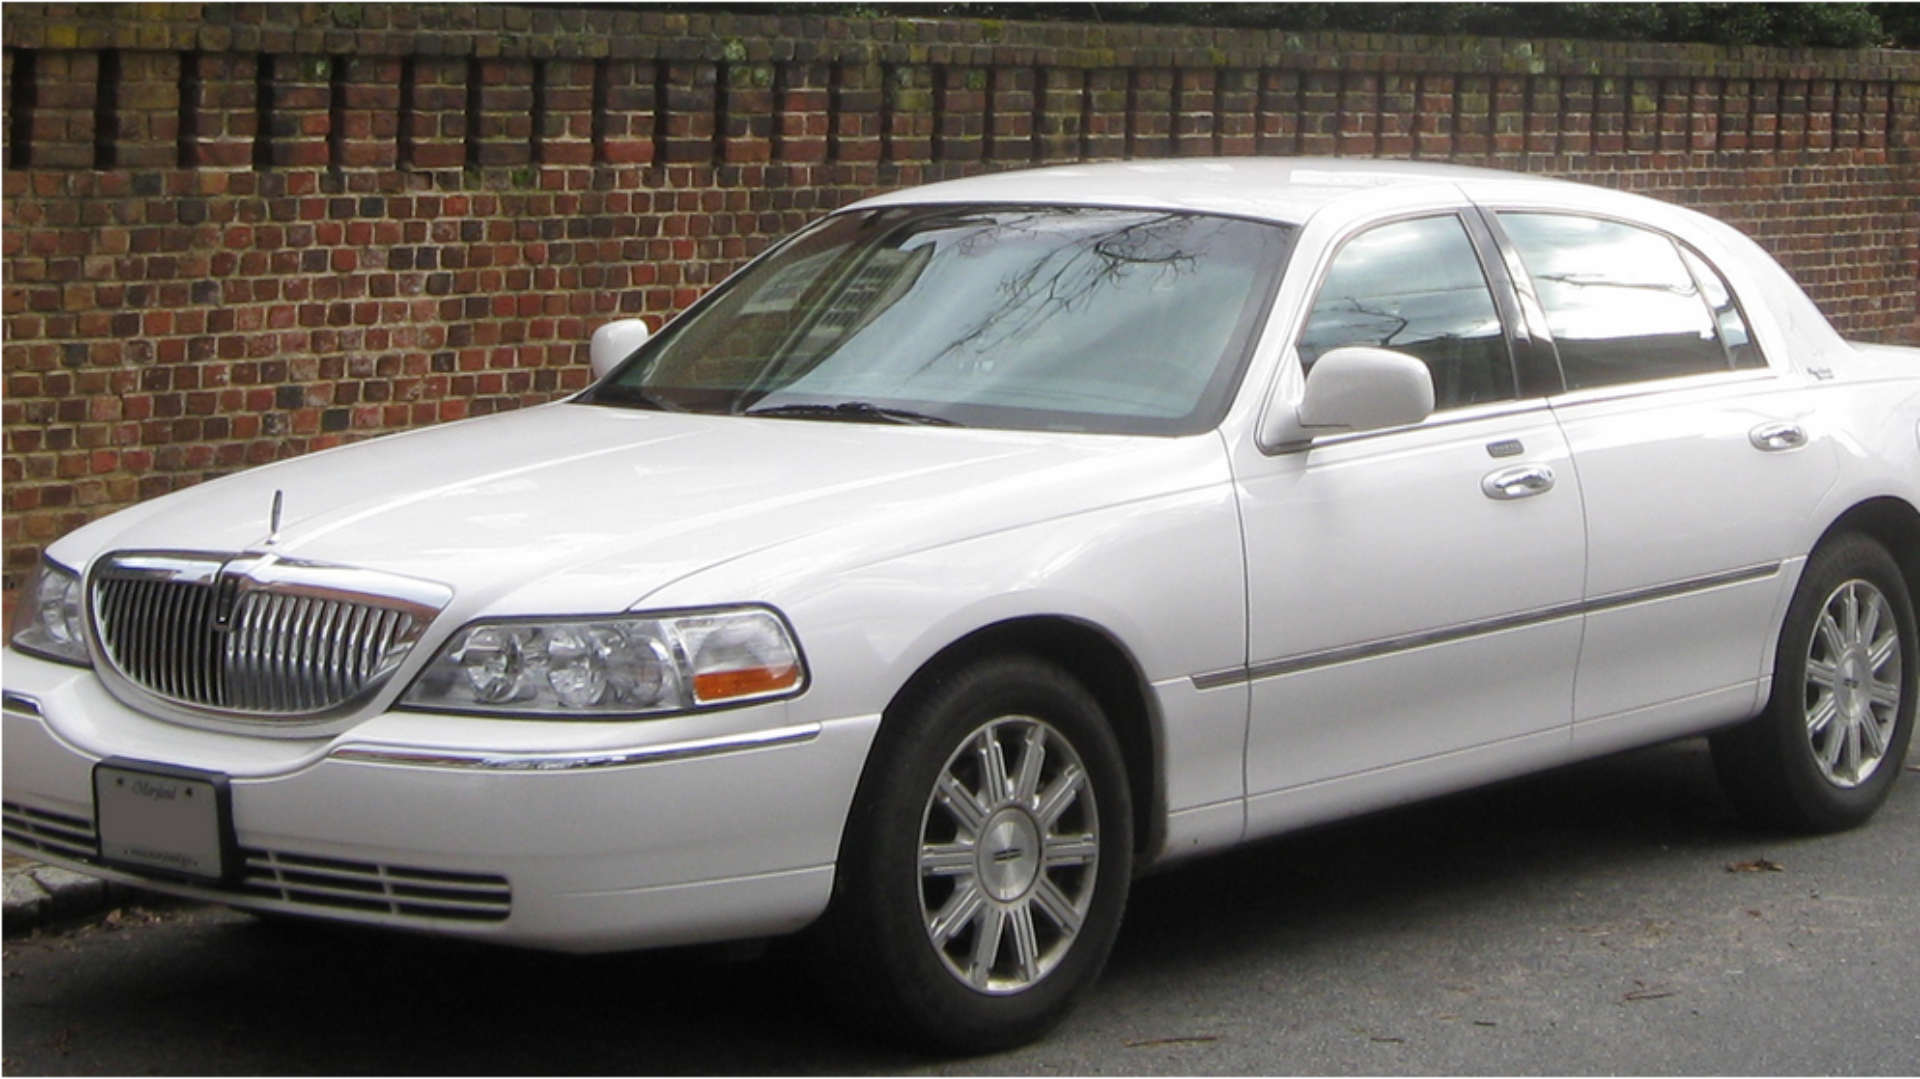 Call Newark Limo